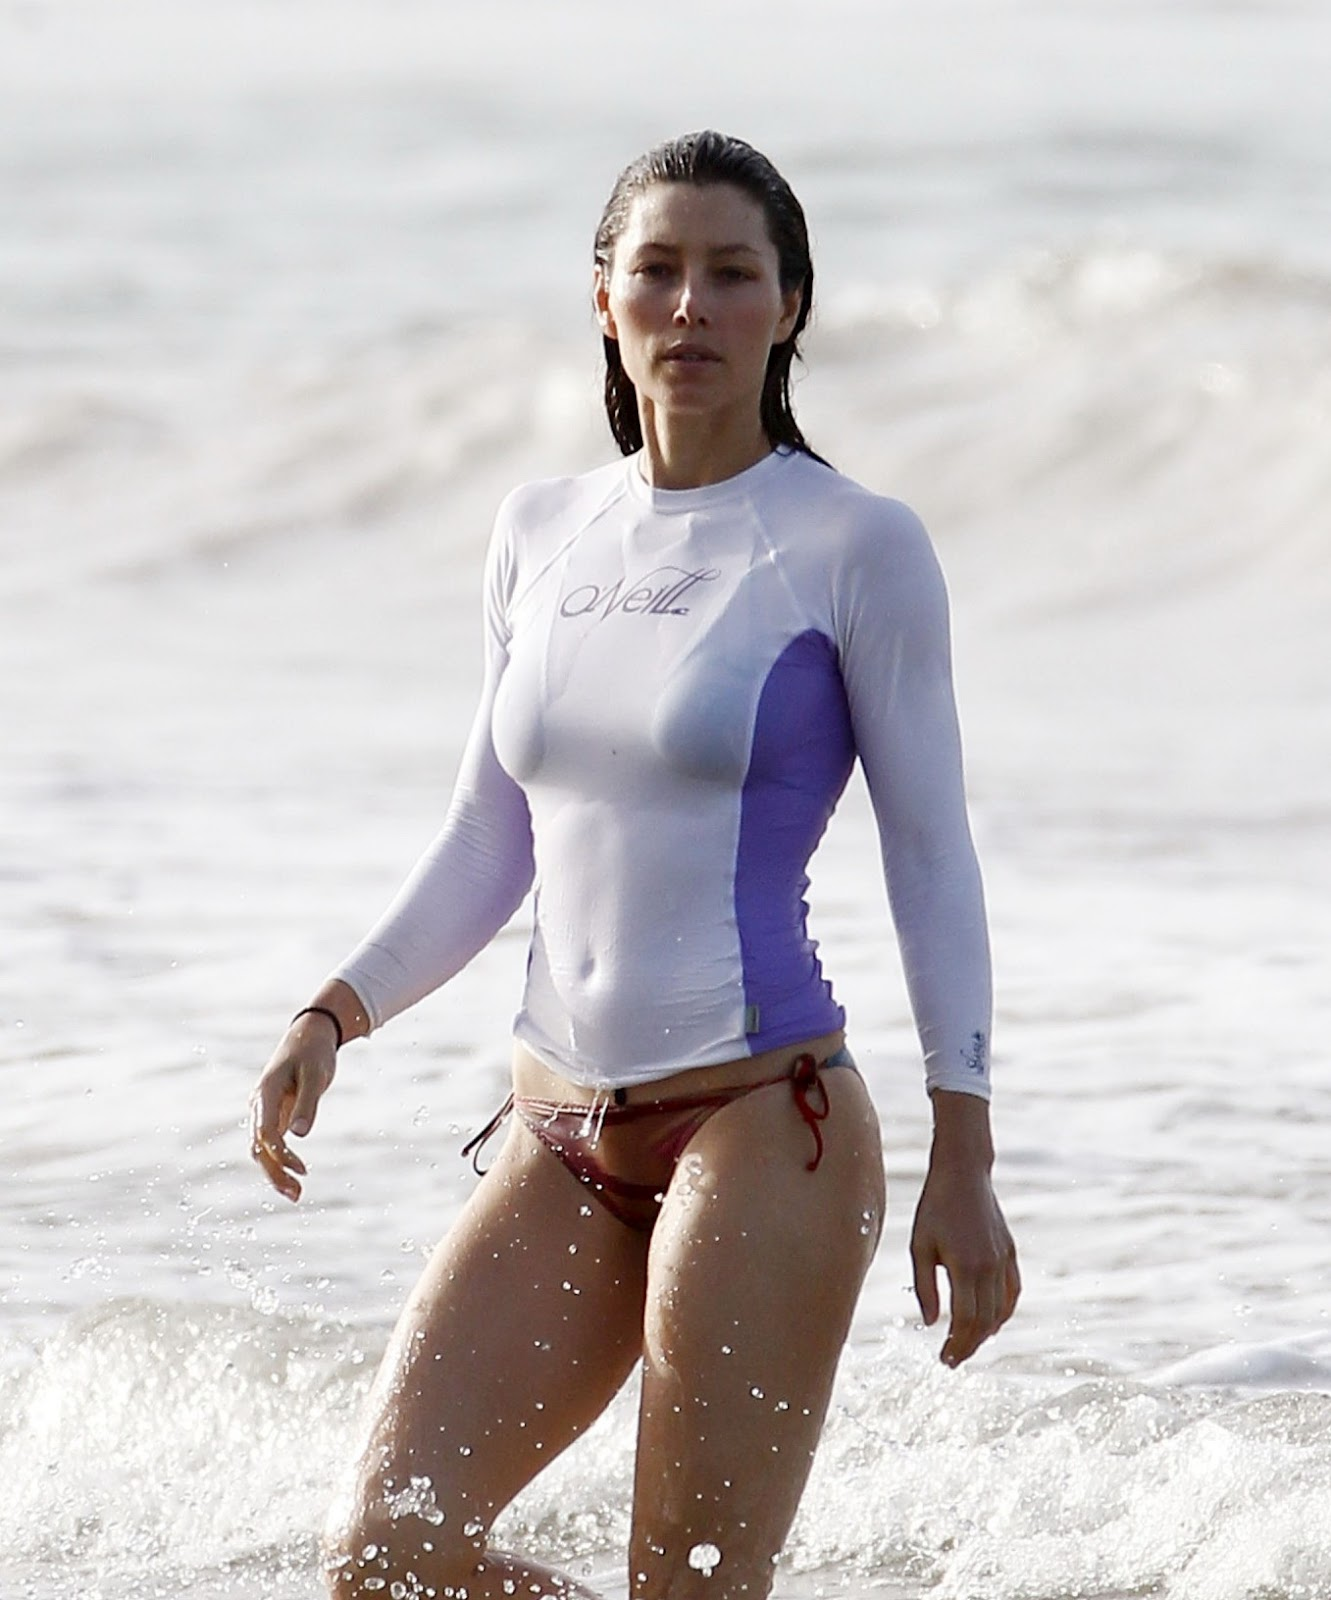 Bikini Jessica Biel nudes (39 foto and video), Ass, Hot, Instagram, bra 2019